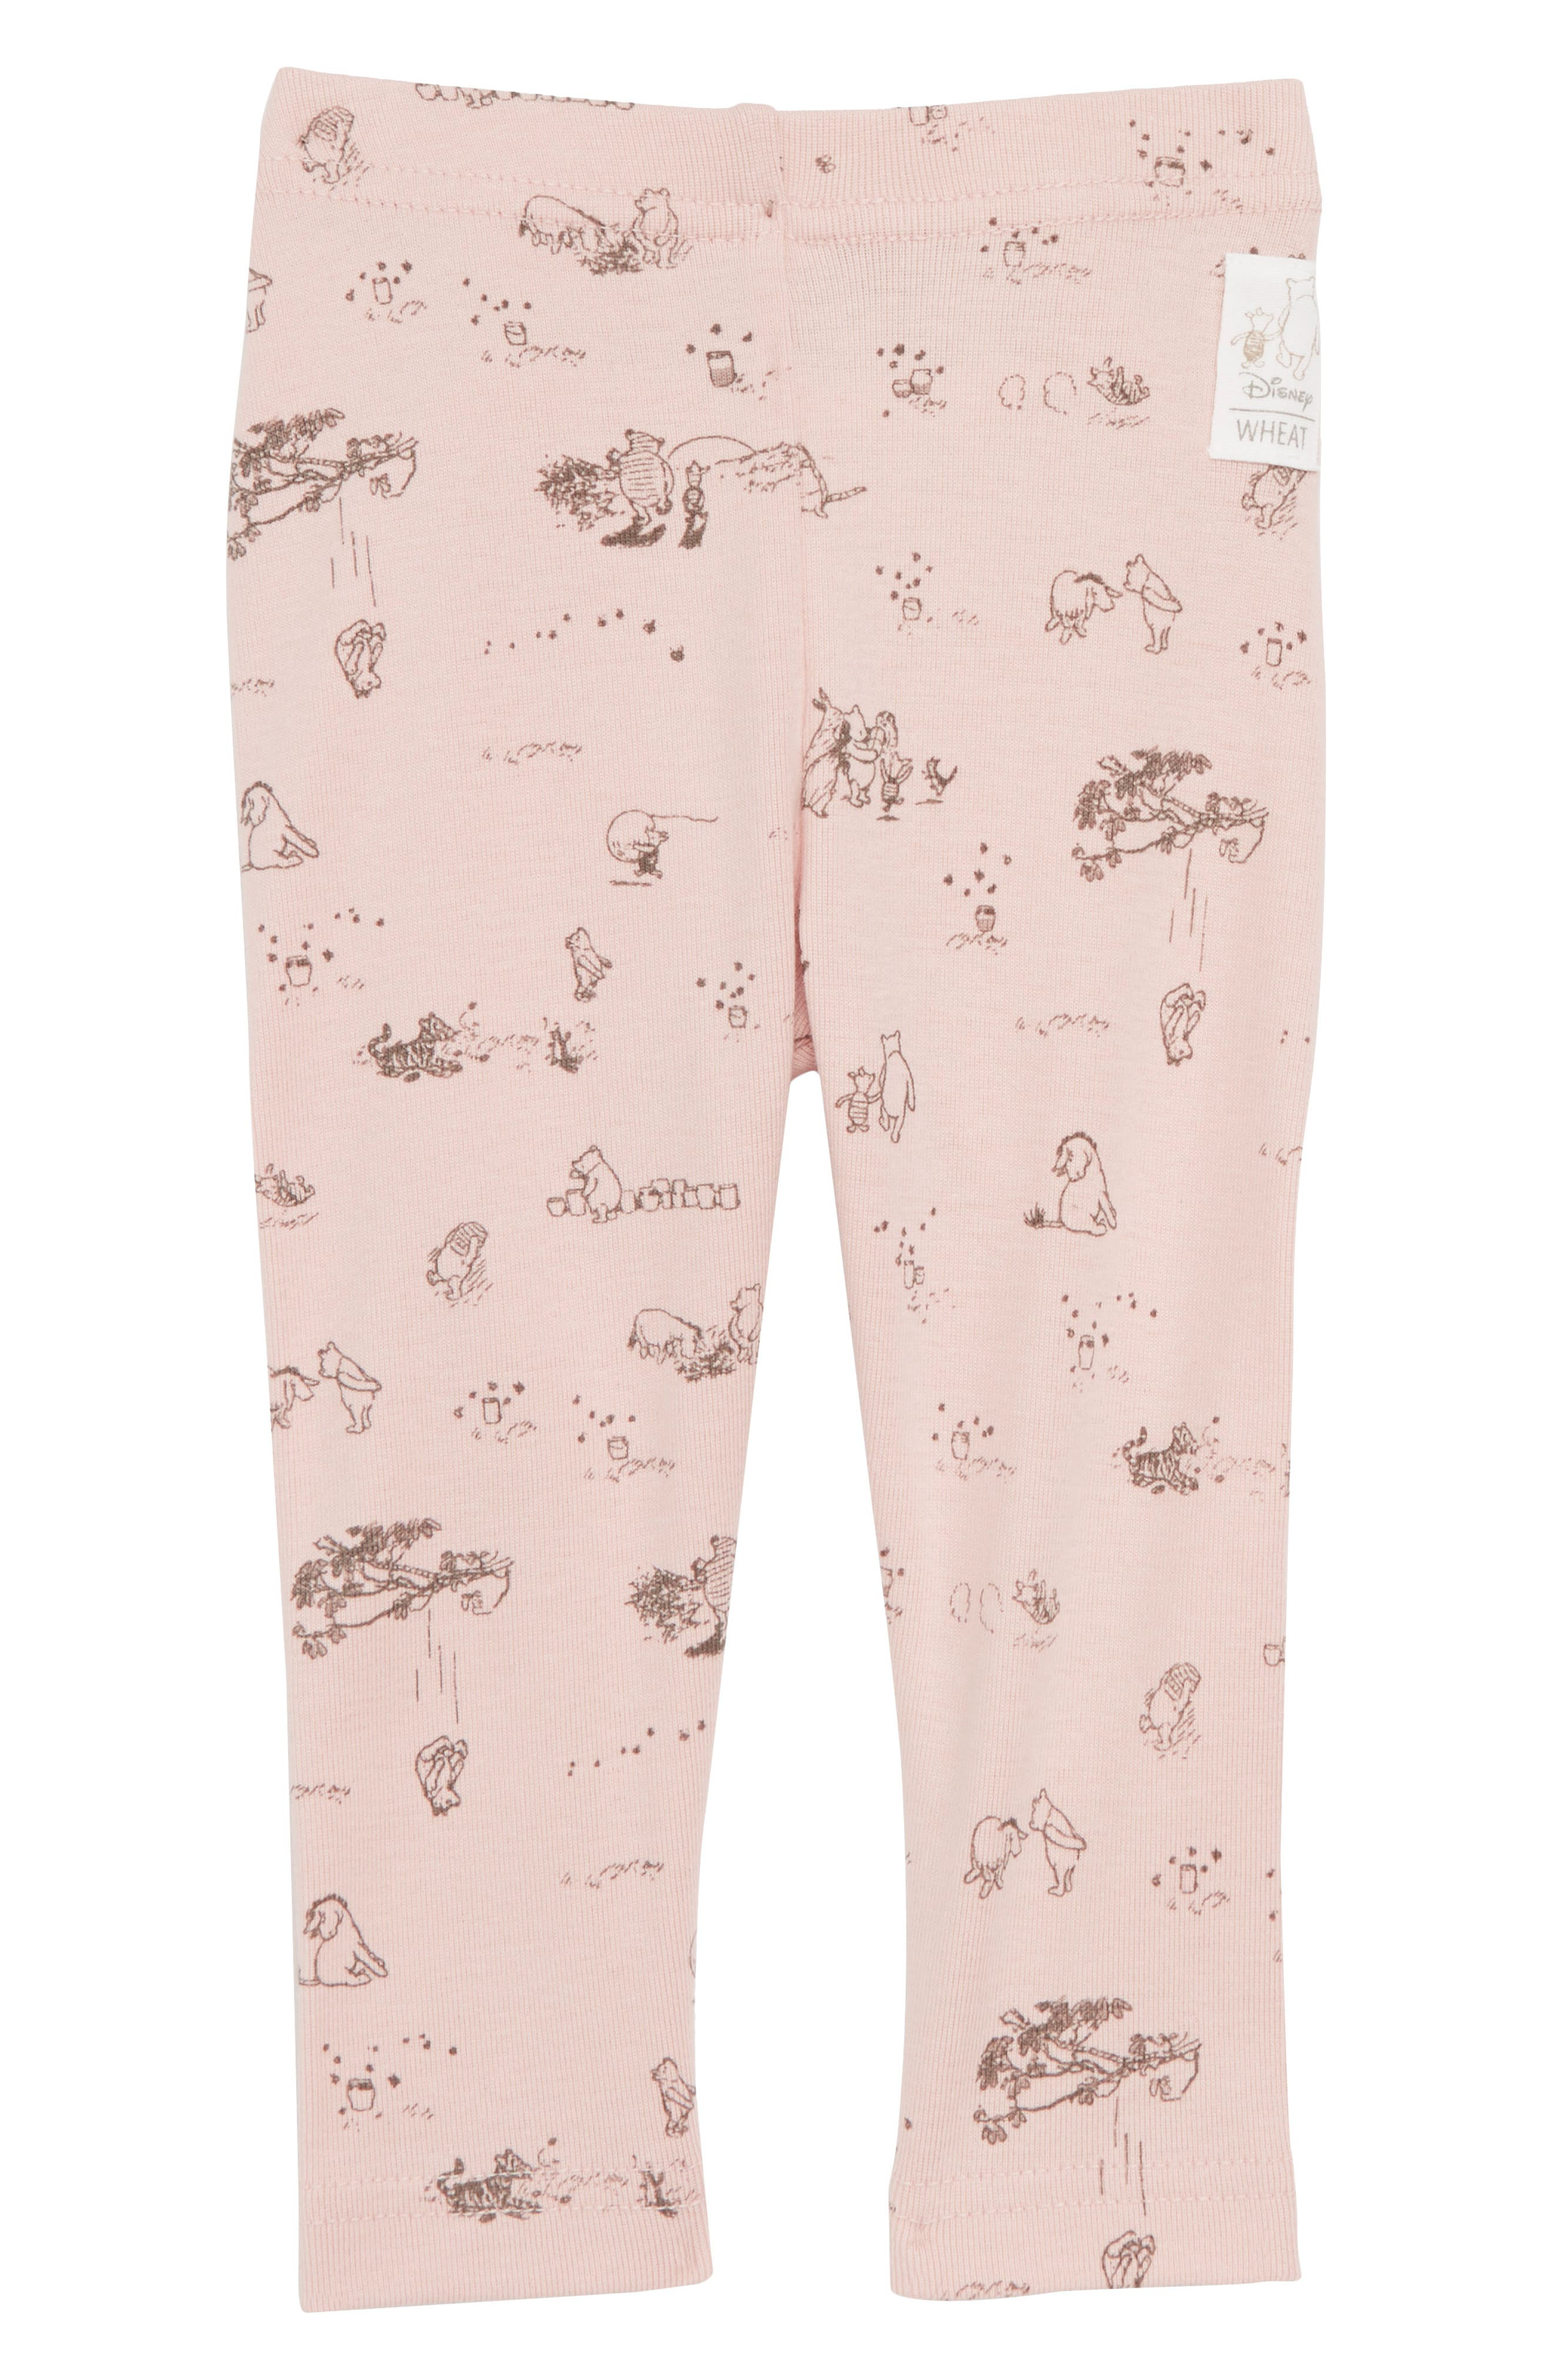 x Disney<sup>®</sup> Winnie the Pooh Organic Cotton Leggings,                         Main,                         color, 650